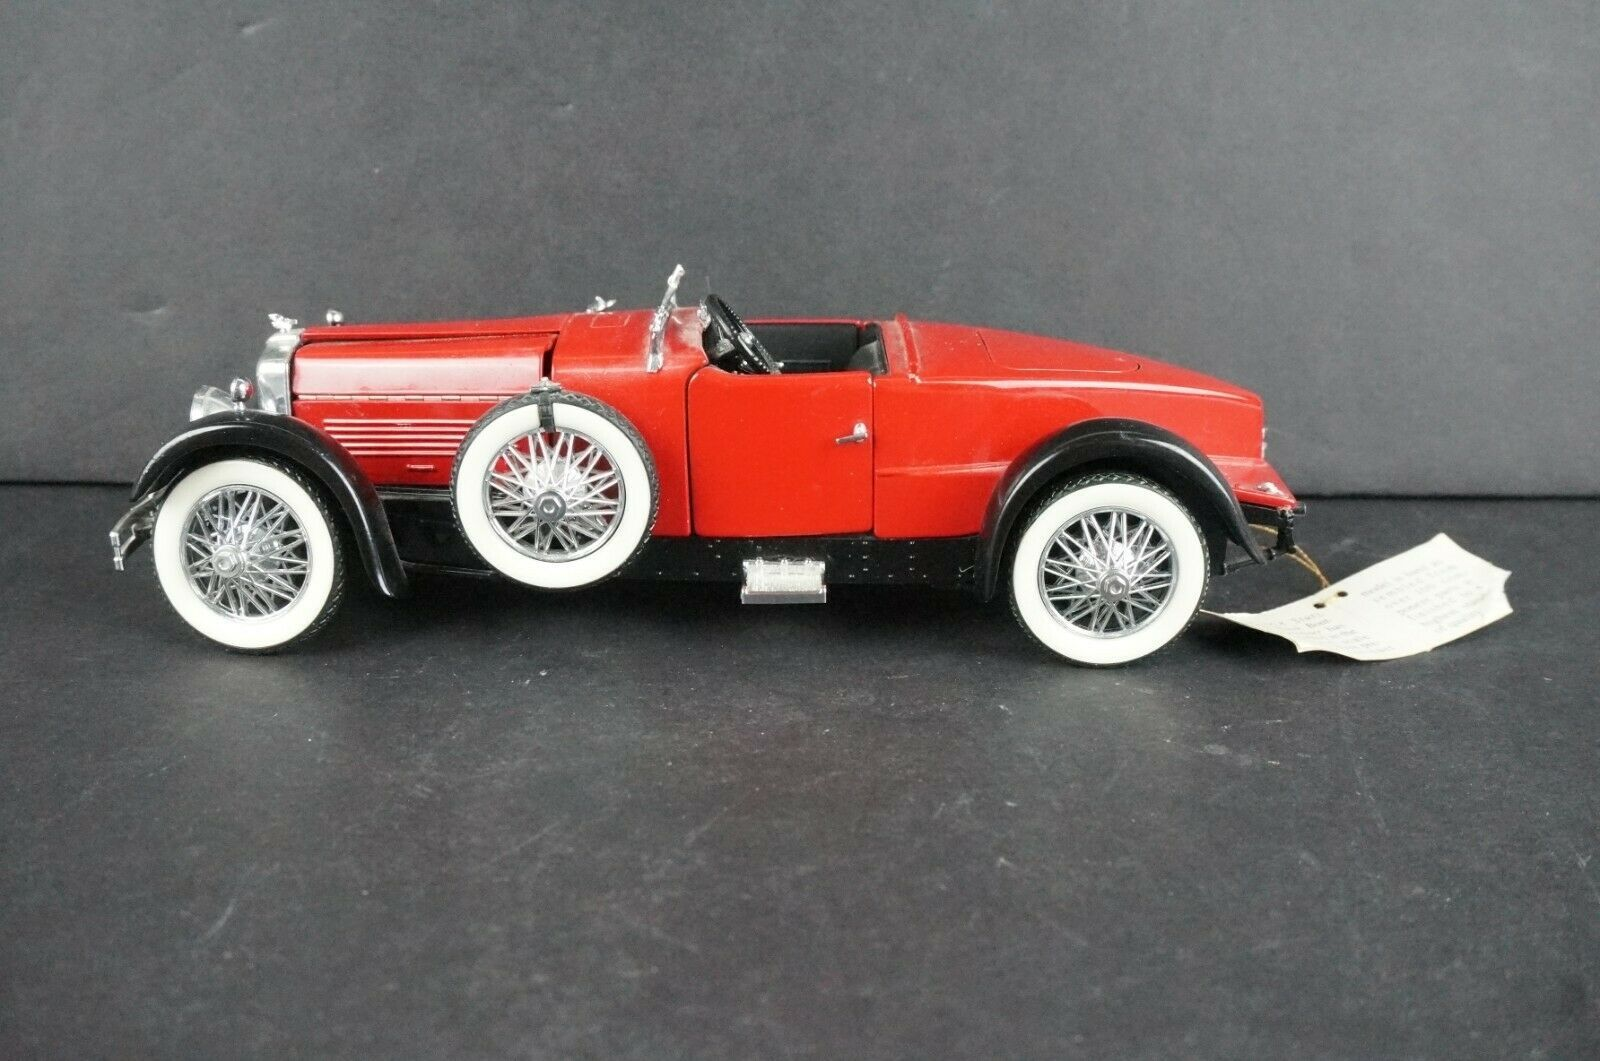 Primary image for Franklin Mint 1928 Stutz Black Hawk Boat-tail Speedster 1/24 Scale Broken